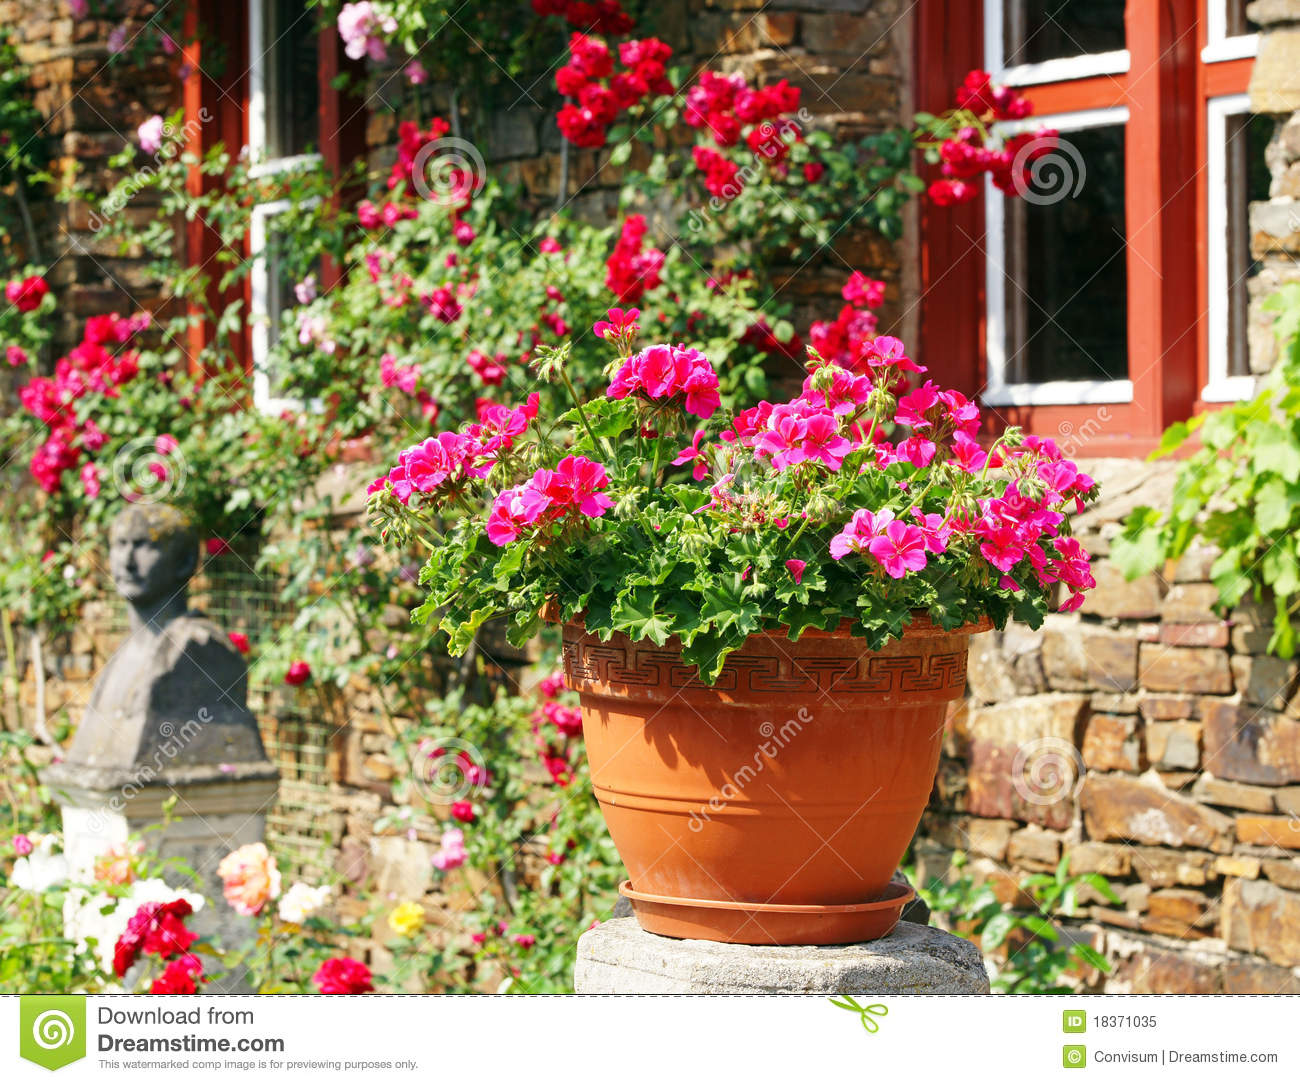 Flower Pot In Sunny Garden Royalty Free Stock Photo - designing a sunny garden